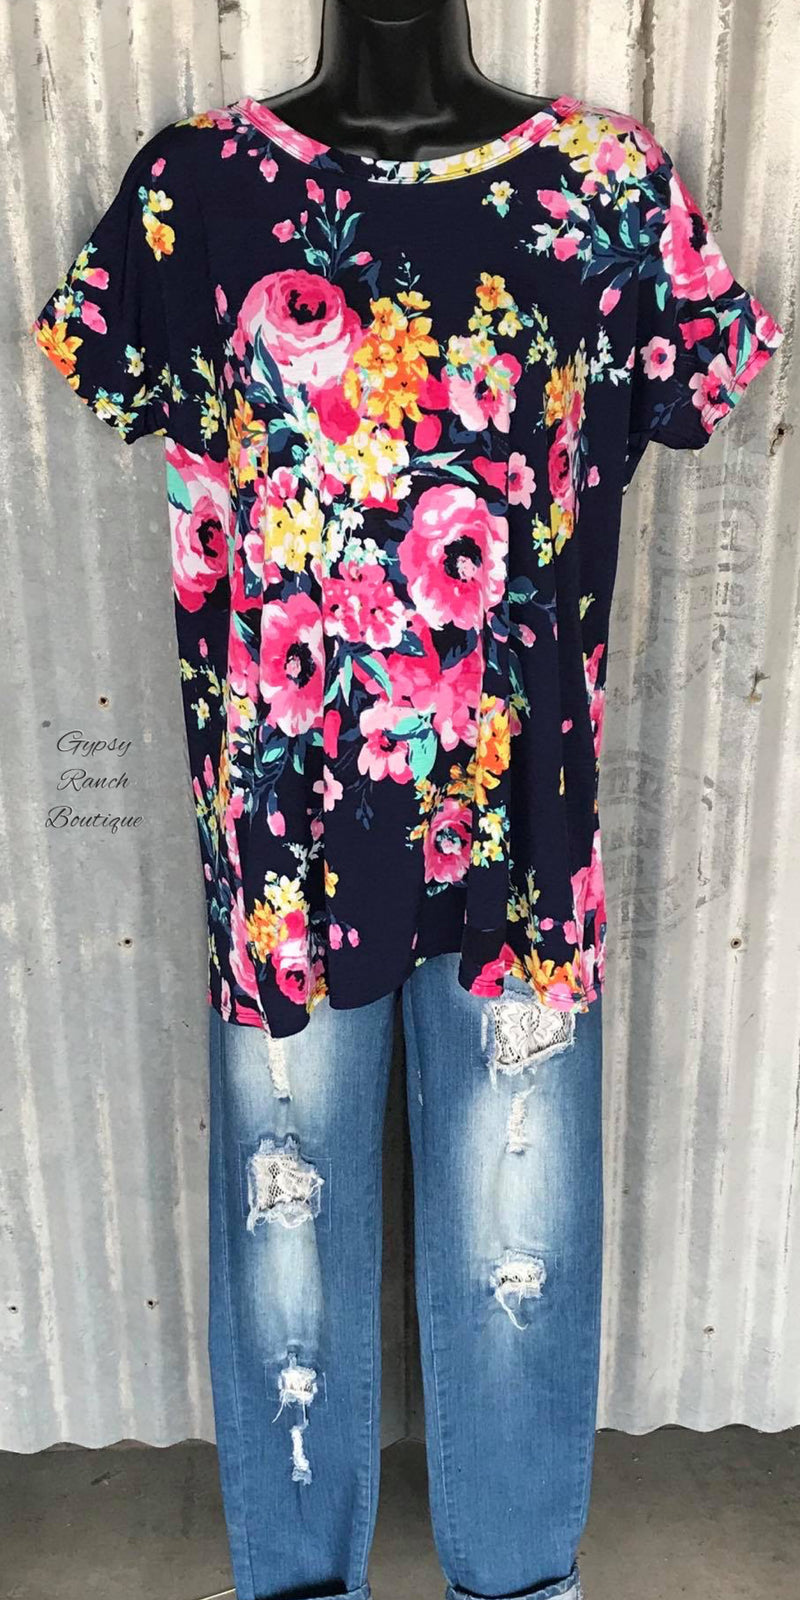 Treasure Bay Floral Top